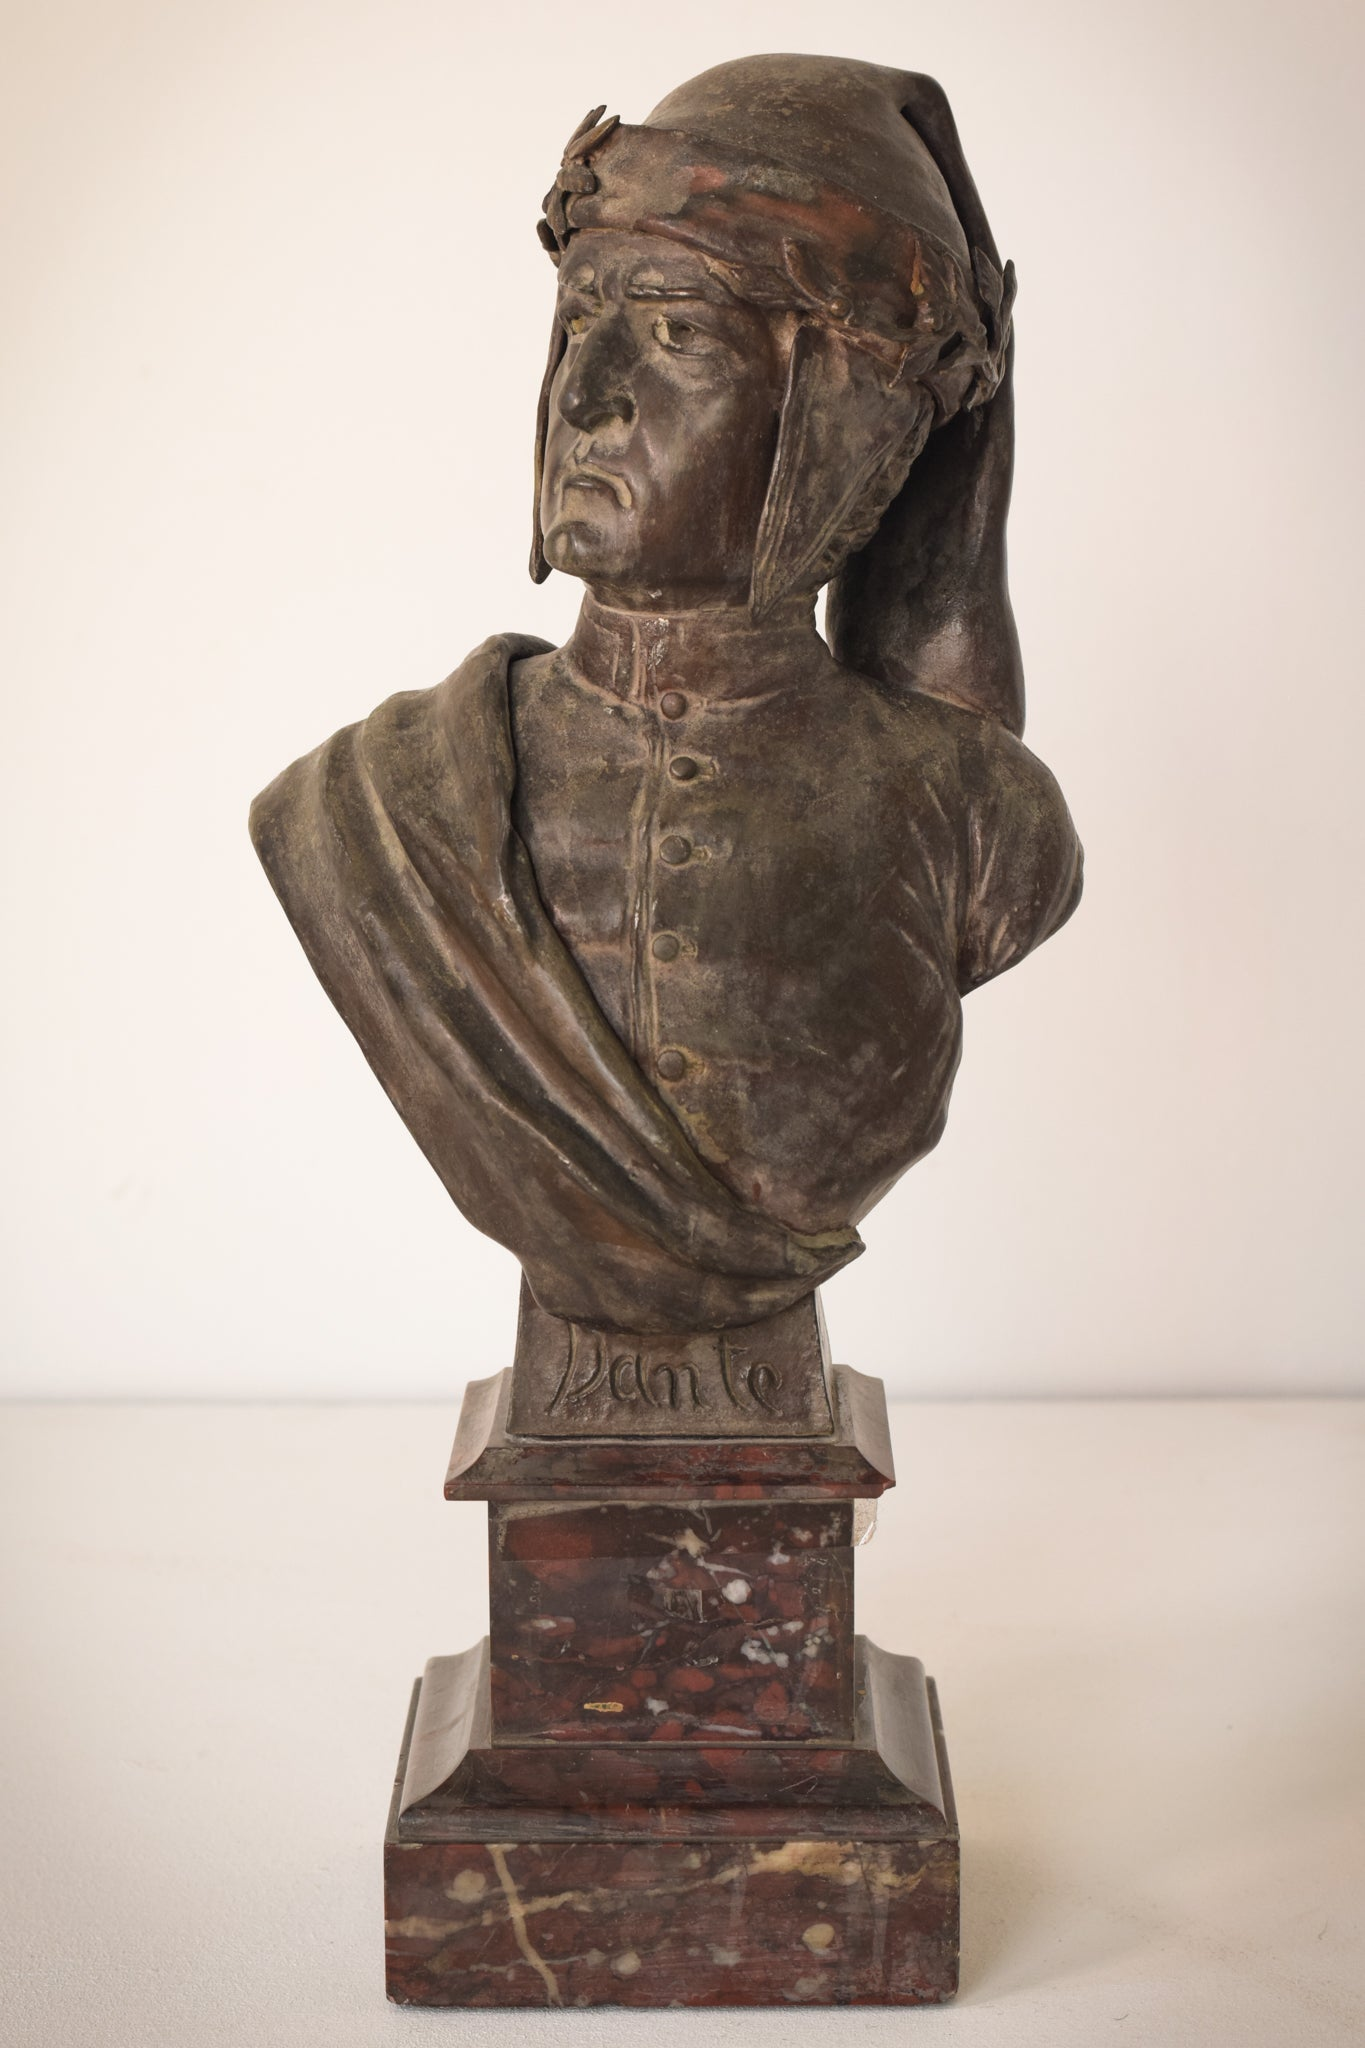 Bronzed bust with marble base of Dante by Giuseppe Moretti